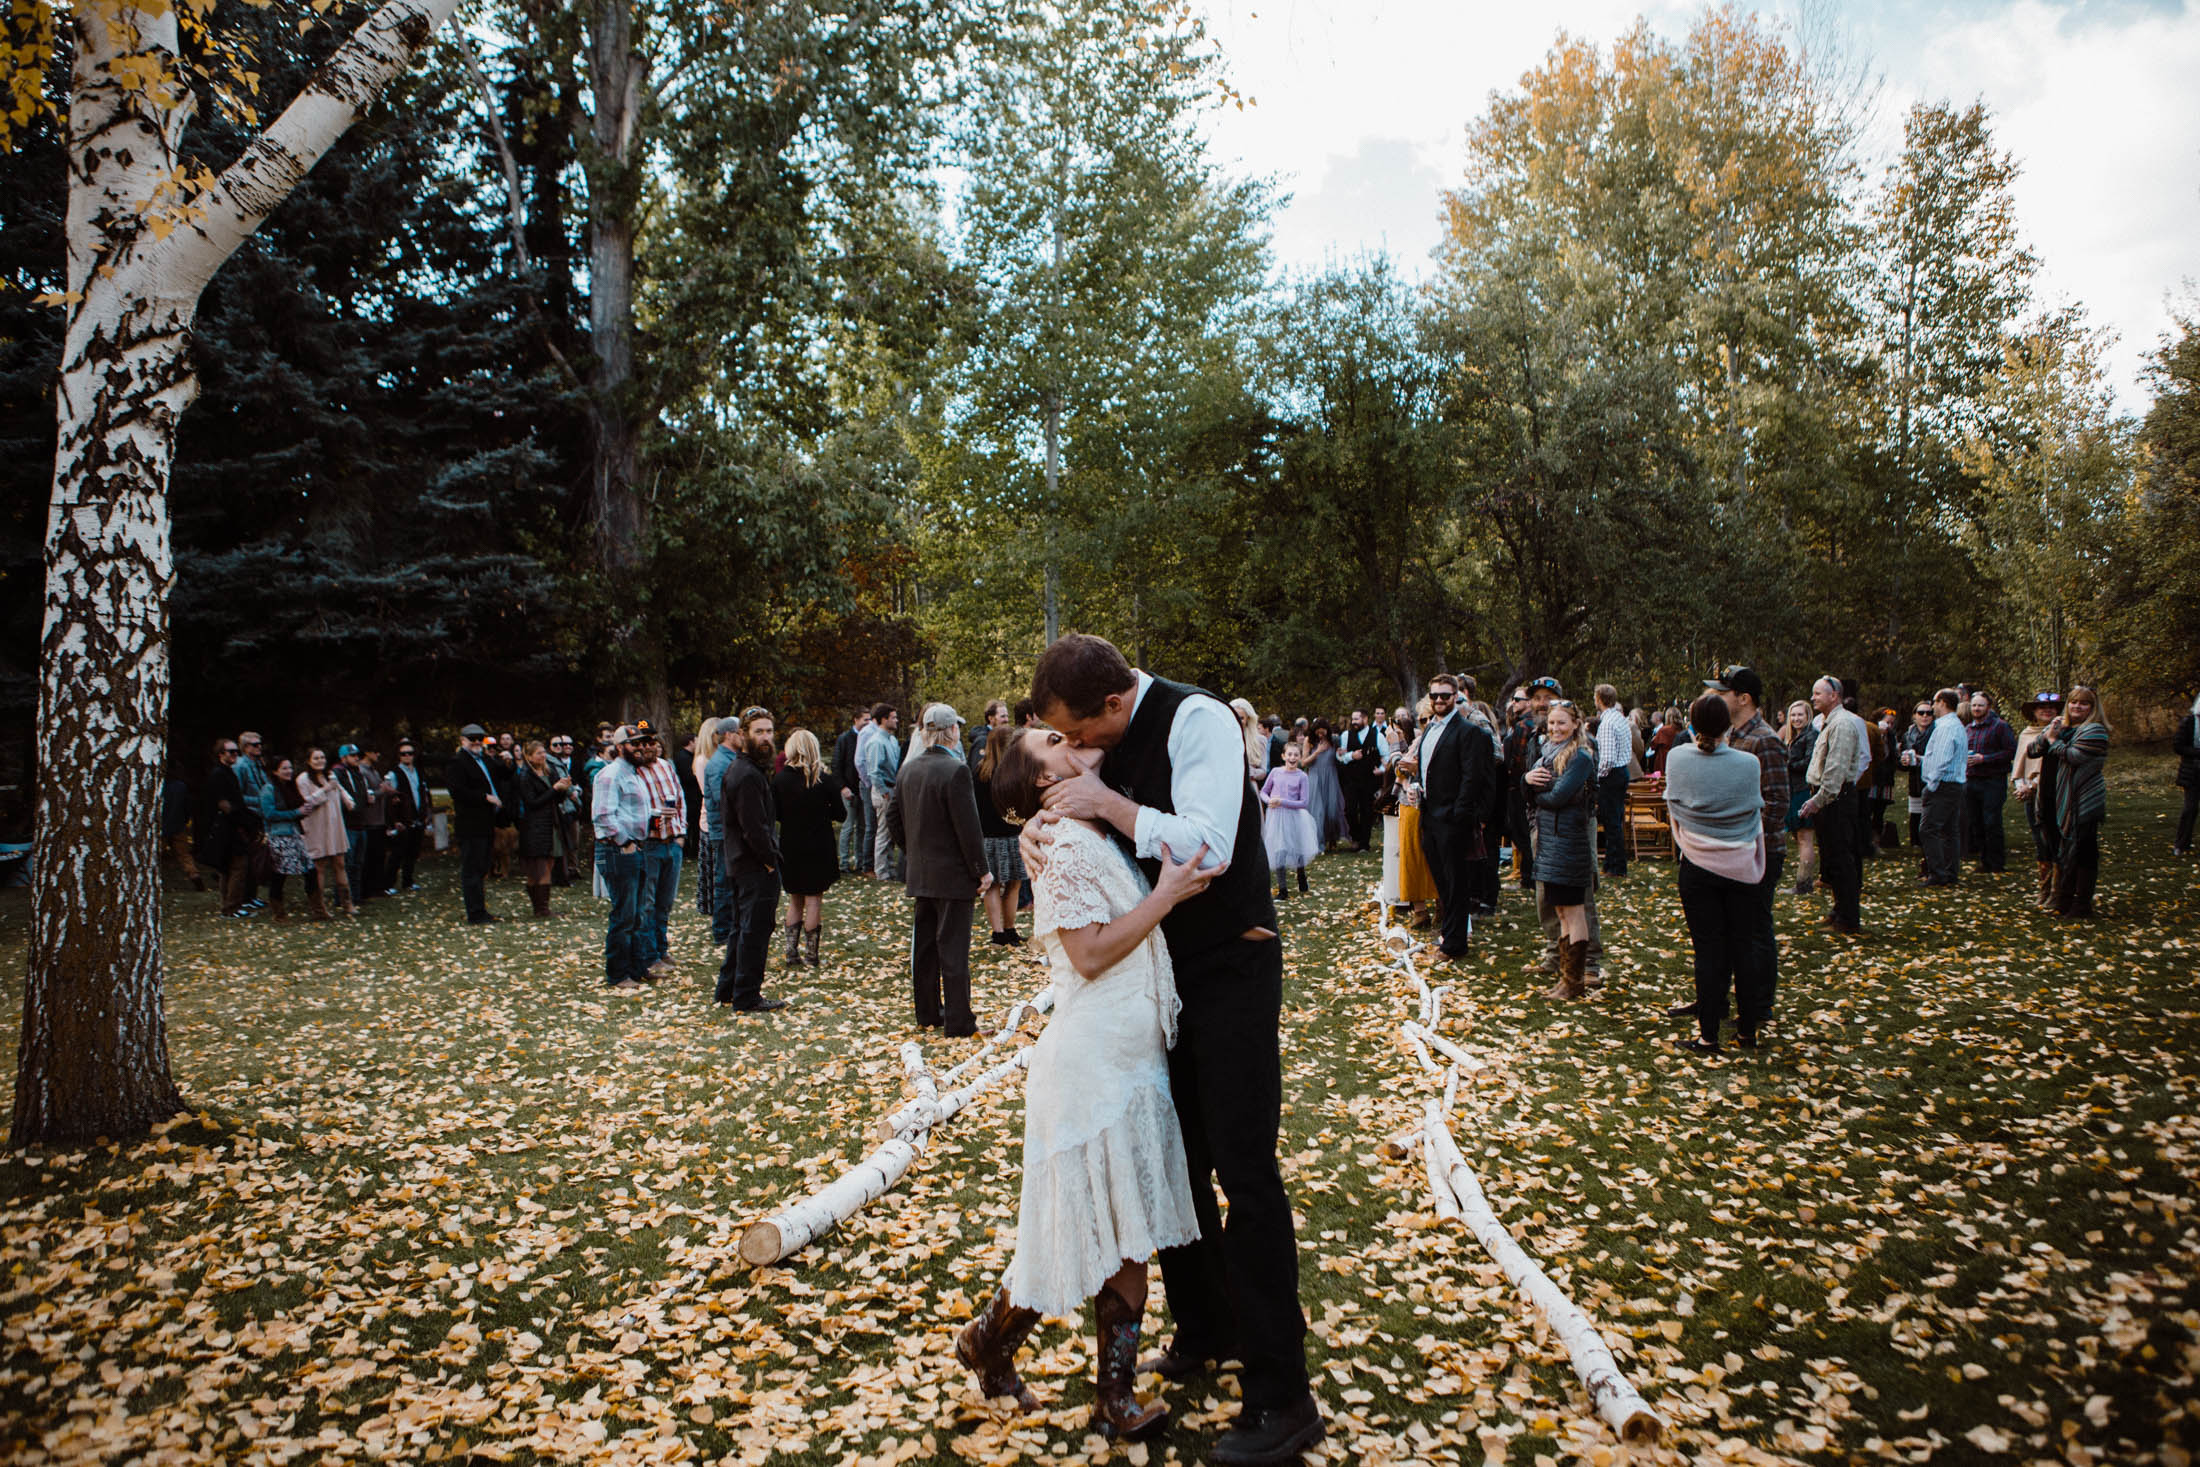 nolan_tanner_sun_valley_wedding-47.jpg